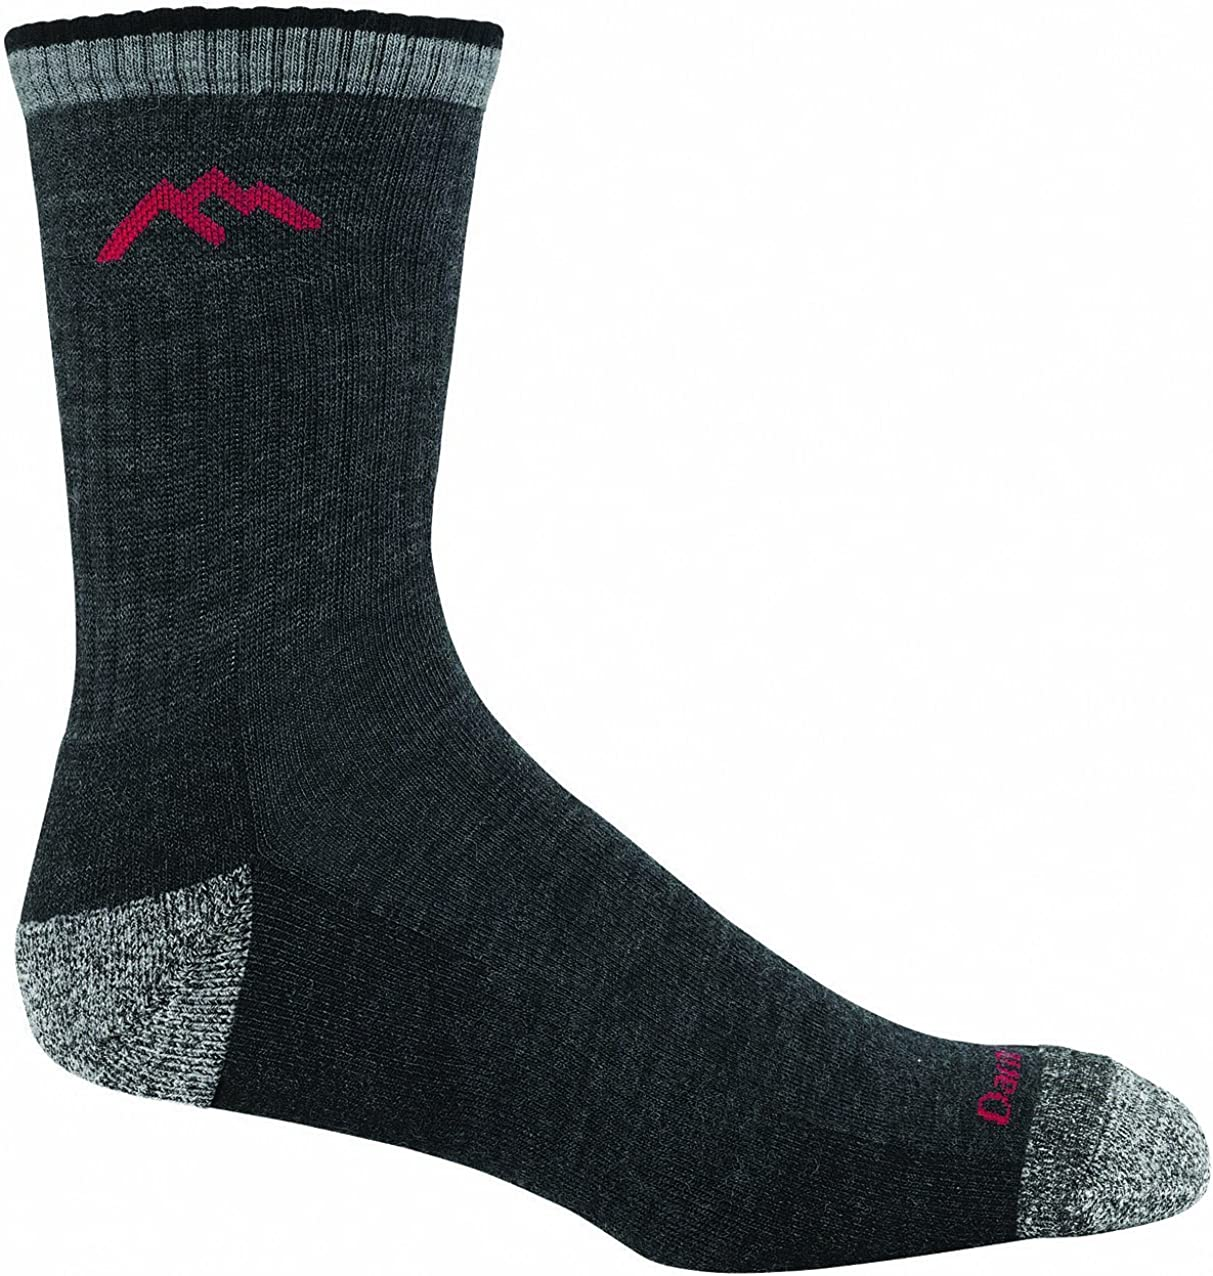 Darn Tough Micro Crew Hiker Socks